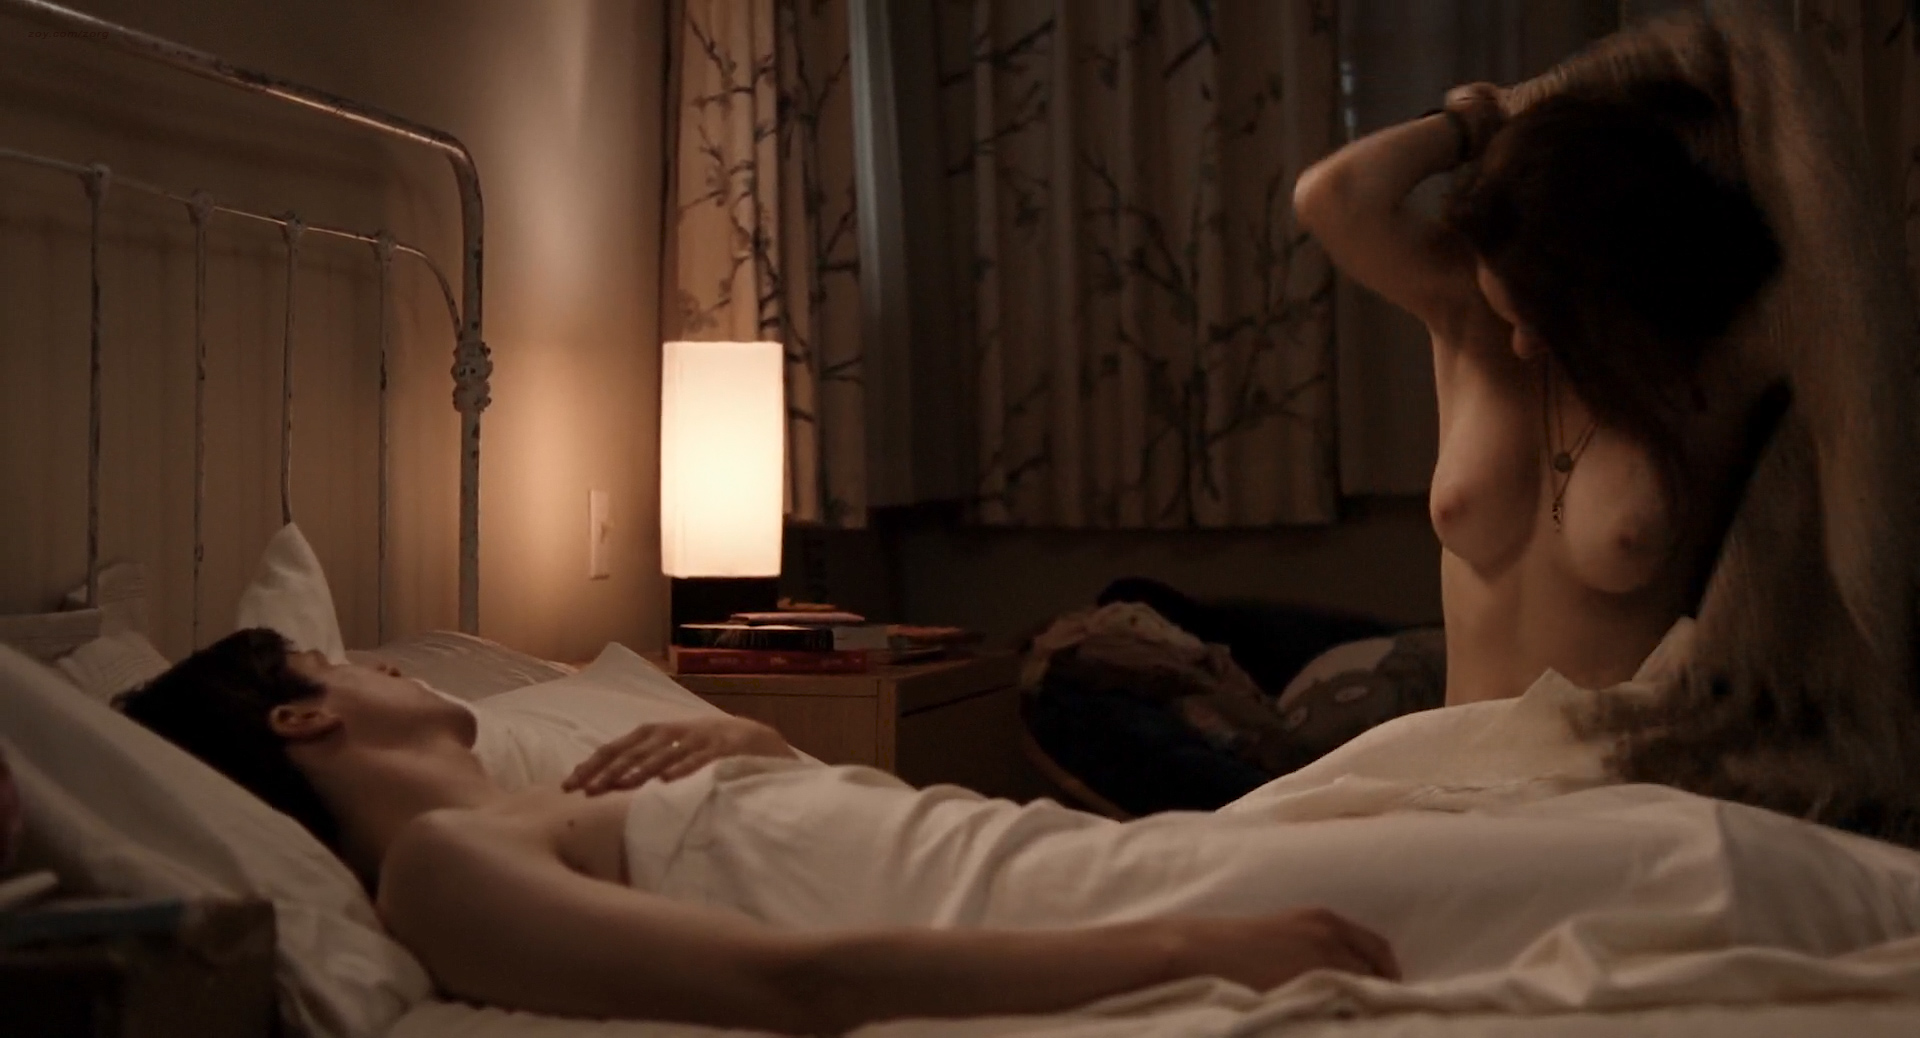 Rachel-Brosnahan-nude-topless-Louder-Than-Bombs-2015-HD-1080p-WEB-DL-6.jpg